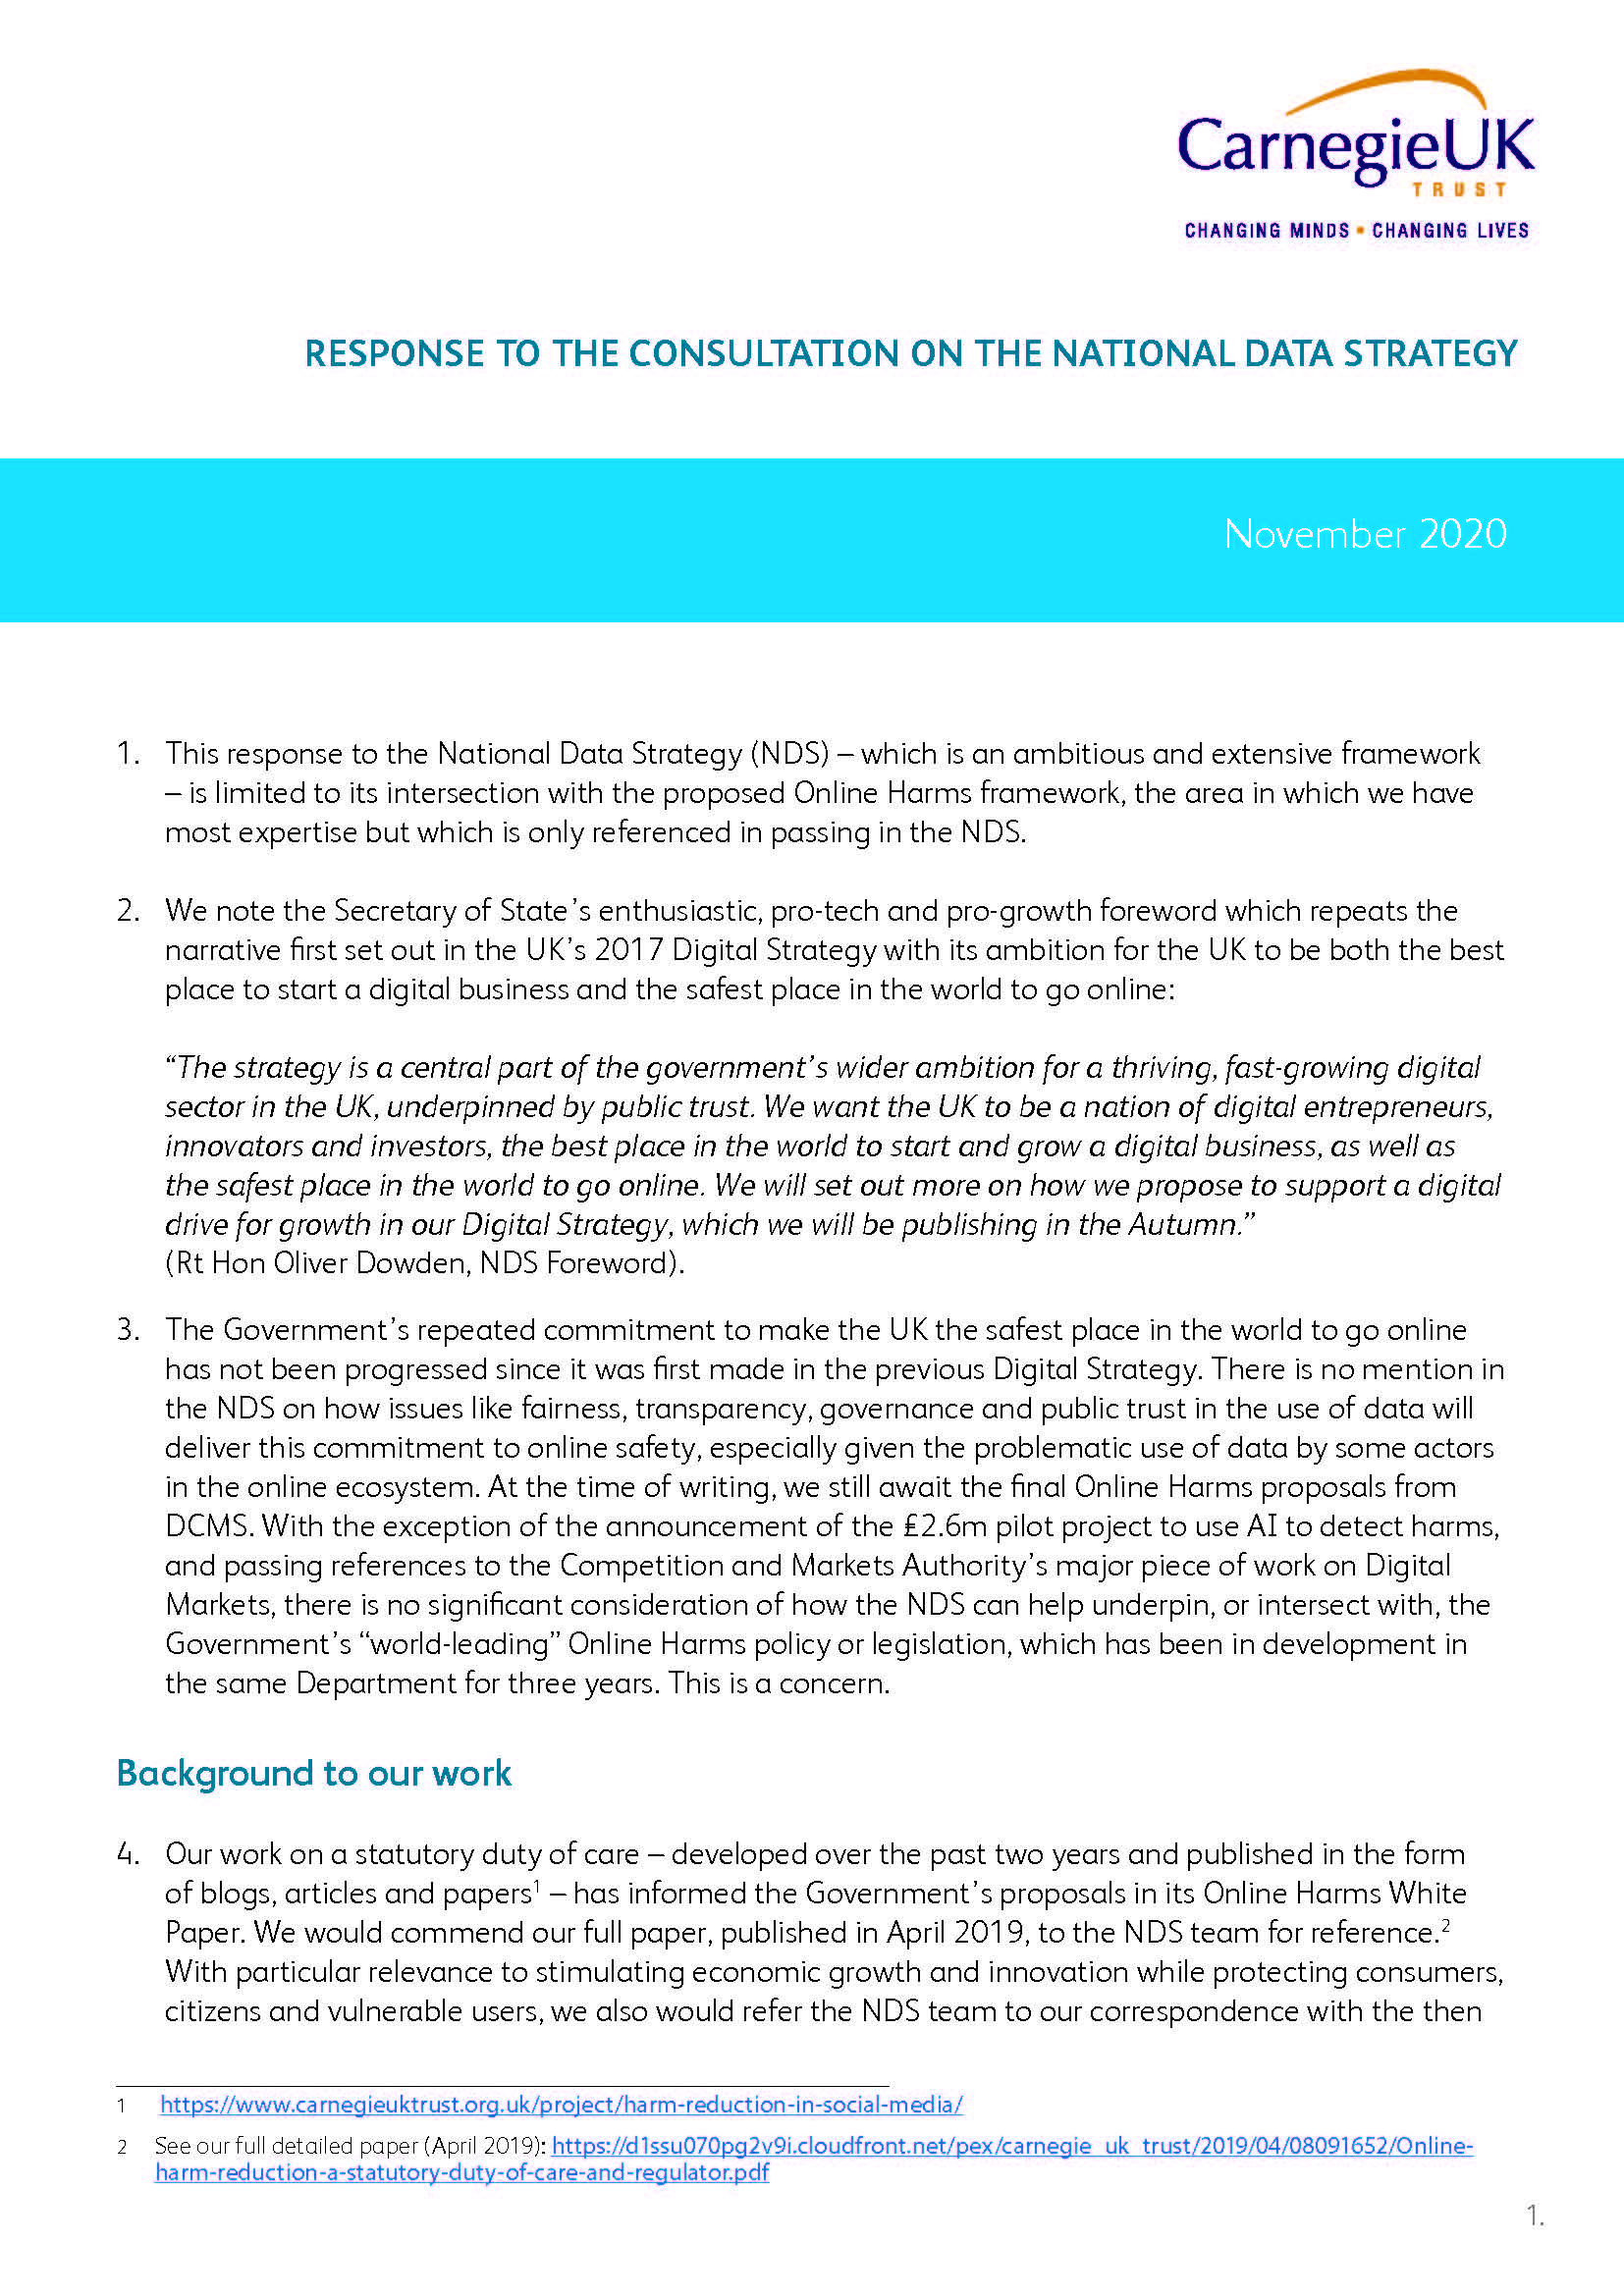 Response to the Consultation on the National Data Strategy